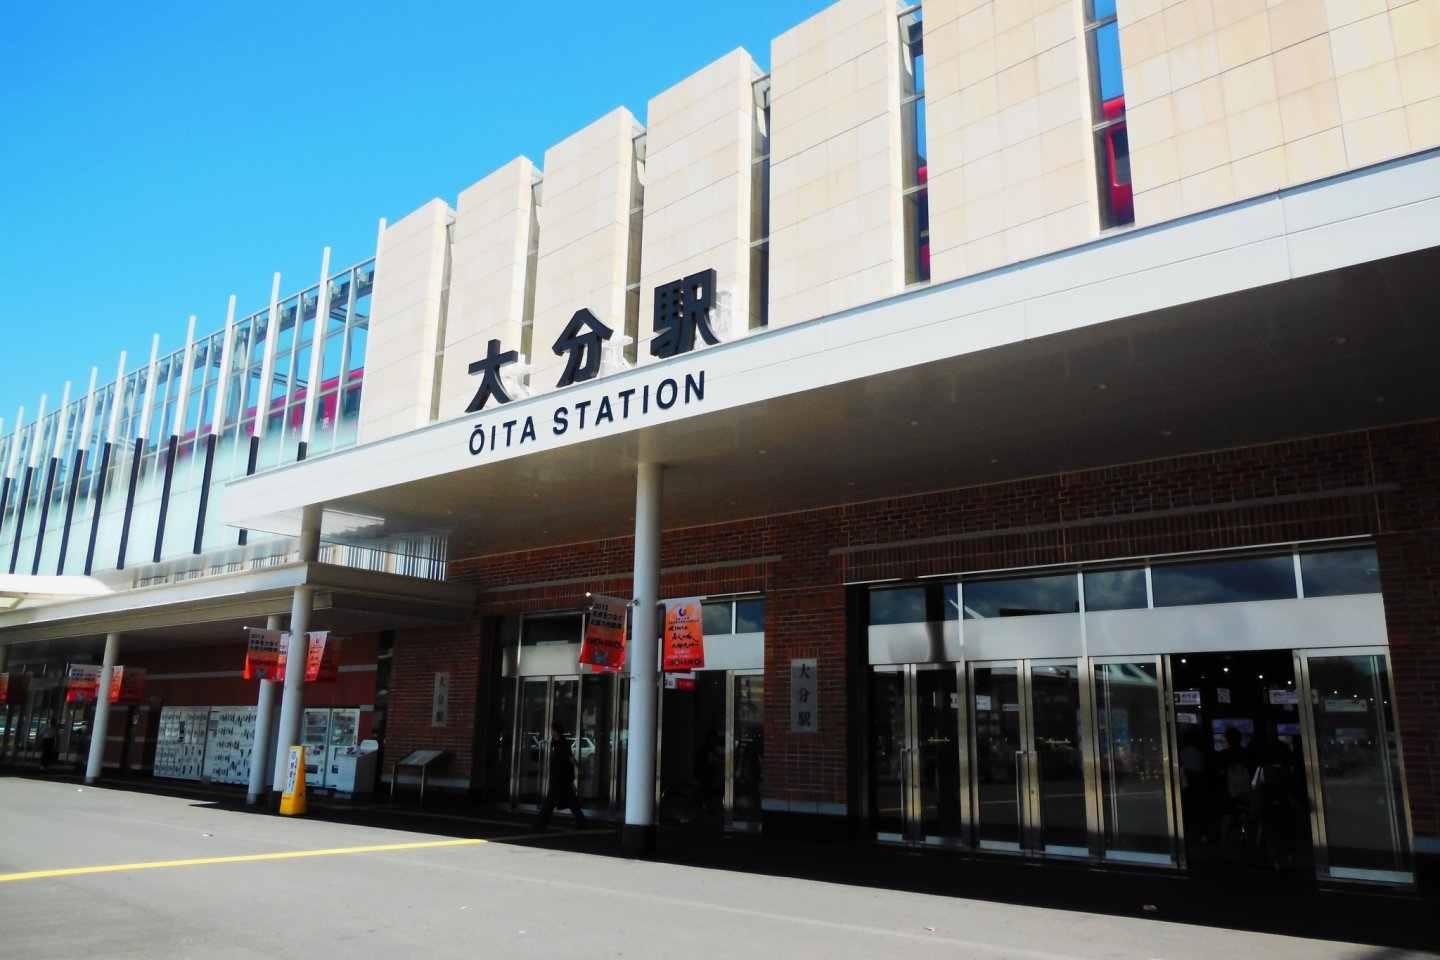 The completely elevated Oita Station